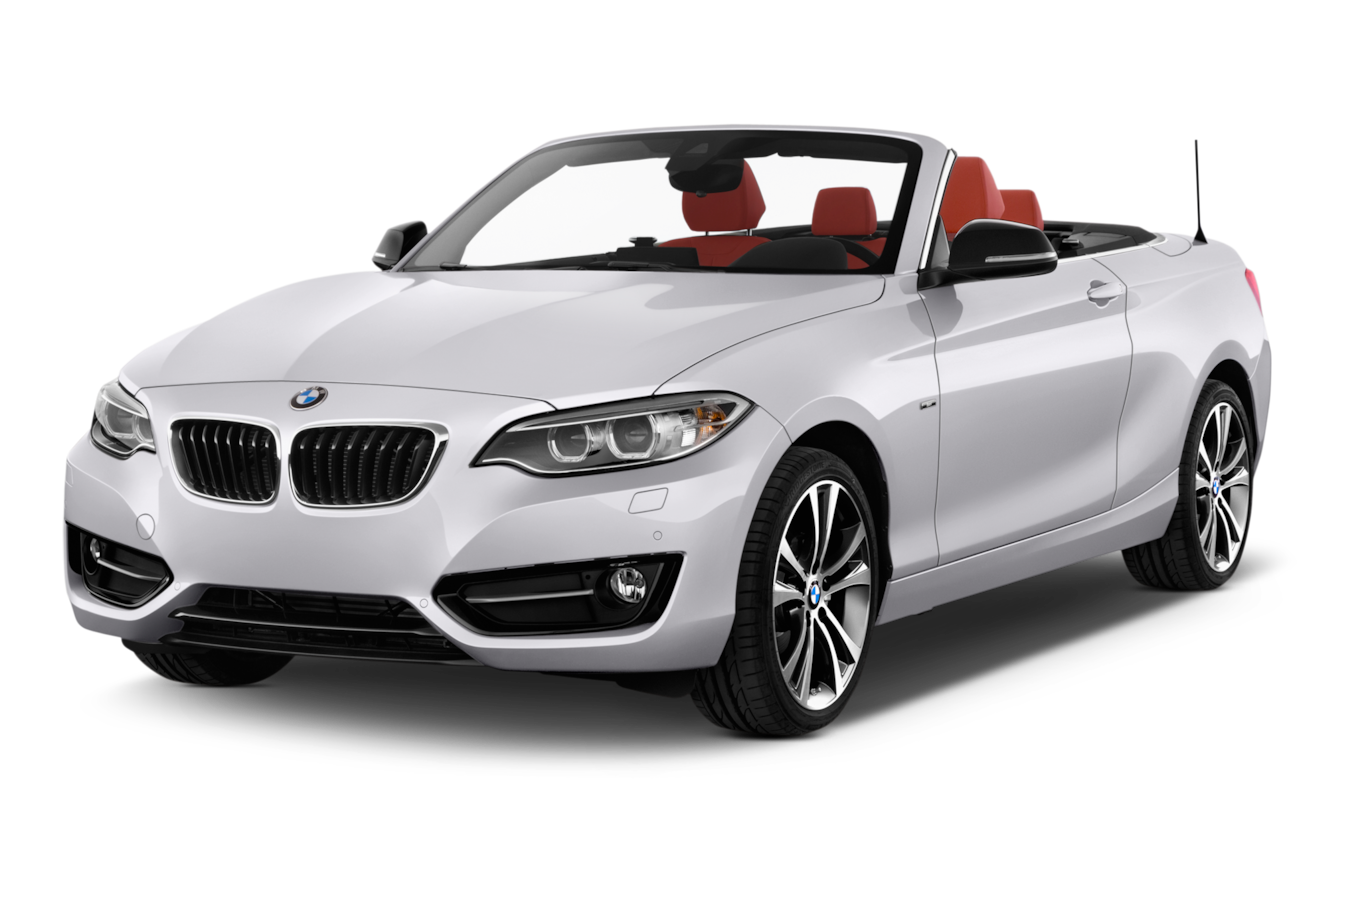 bmw series reviews and rating motor trend #22439